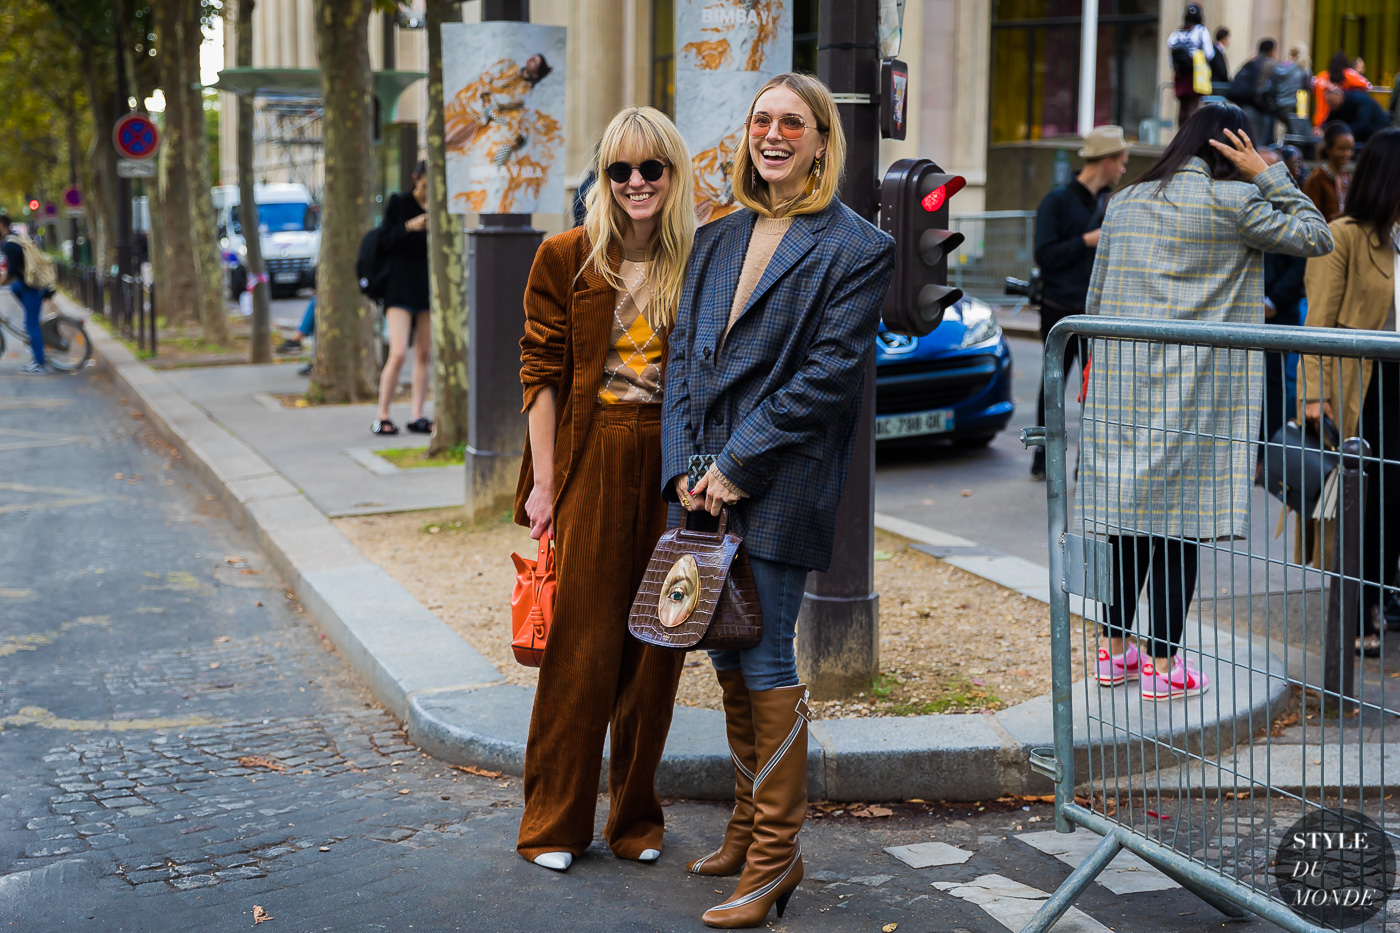 Jeanette Friis Madsen and Pernille Teisbaek by STYLEDUMONDE Street Style Fashion Photography_48A4903